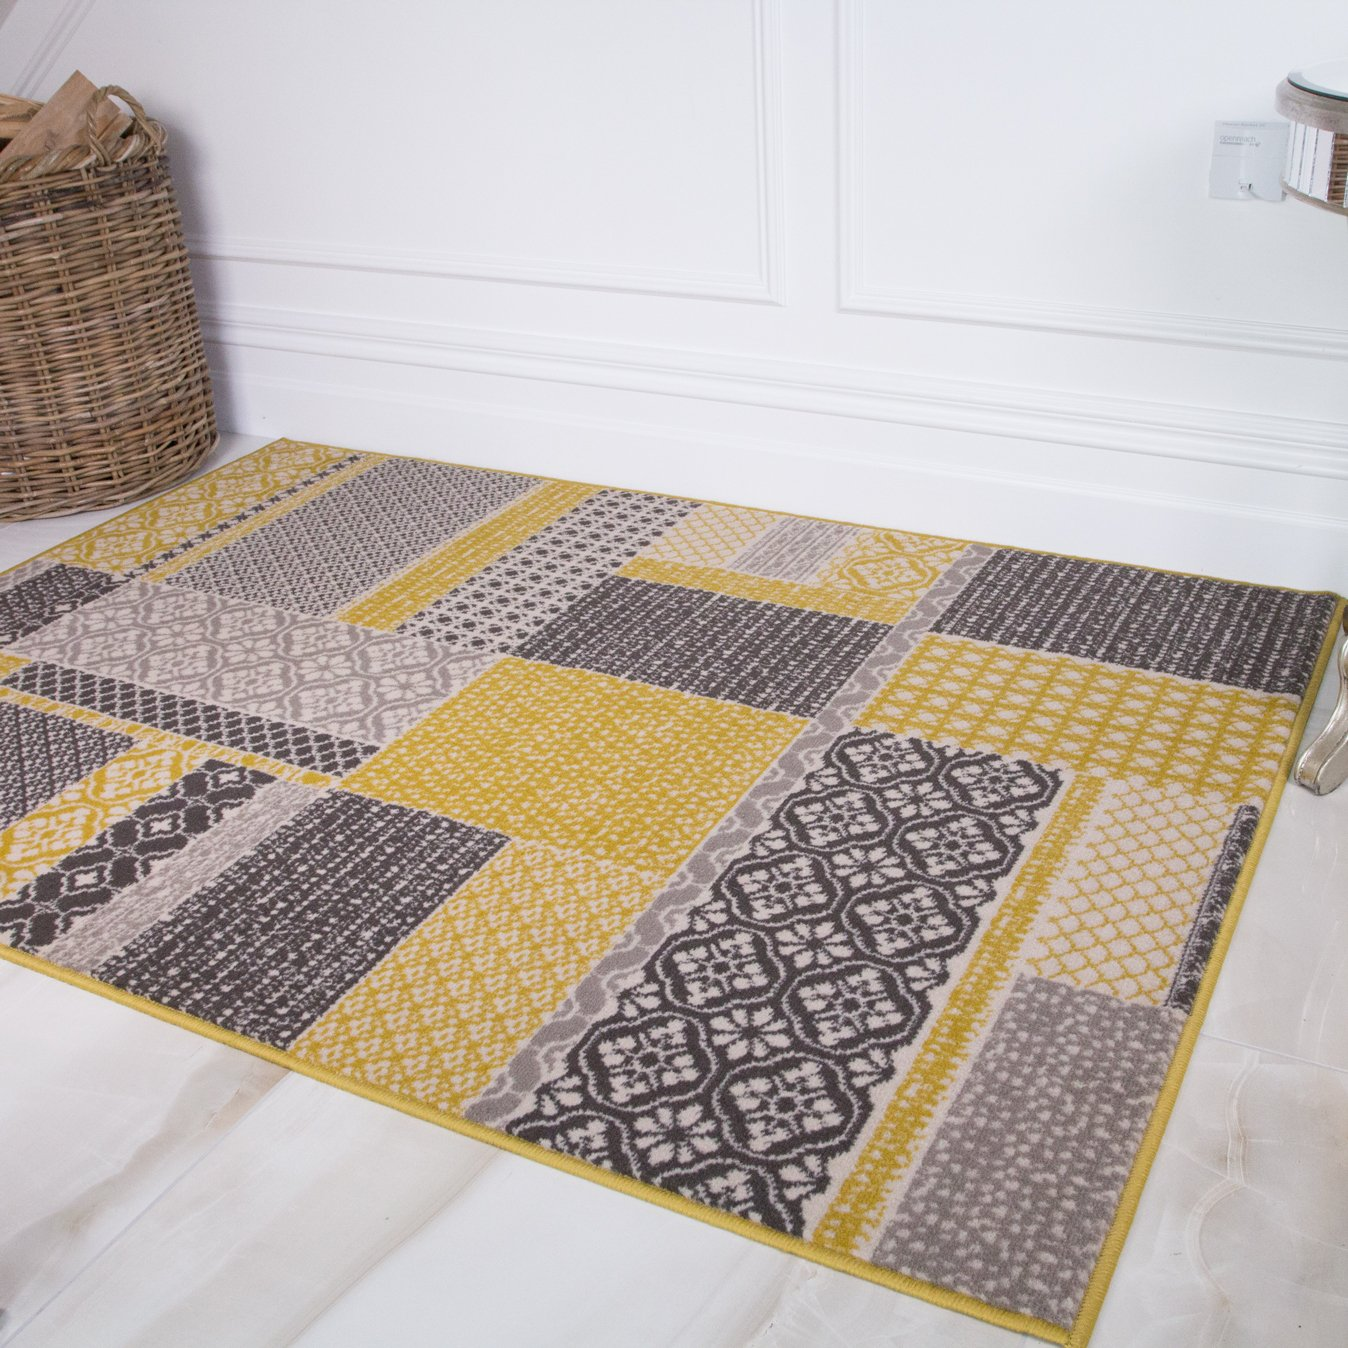 Ochre Yellow Contemporary Patchwork Area Rugs Small Large Rug For Dining Room Ebay